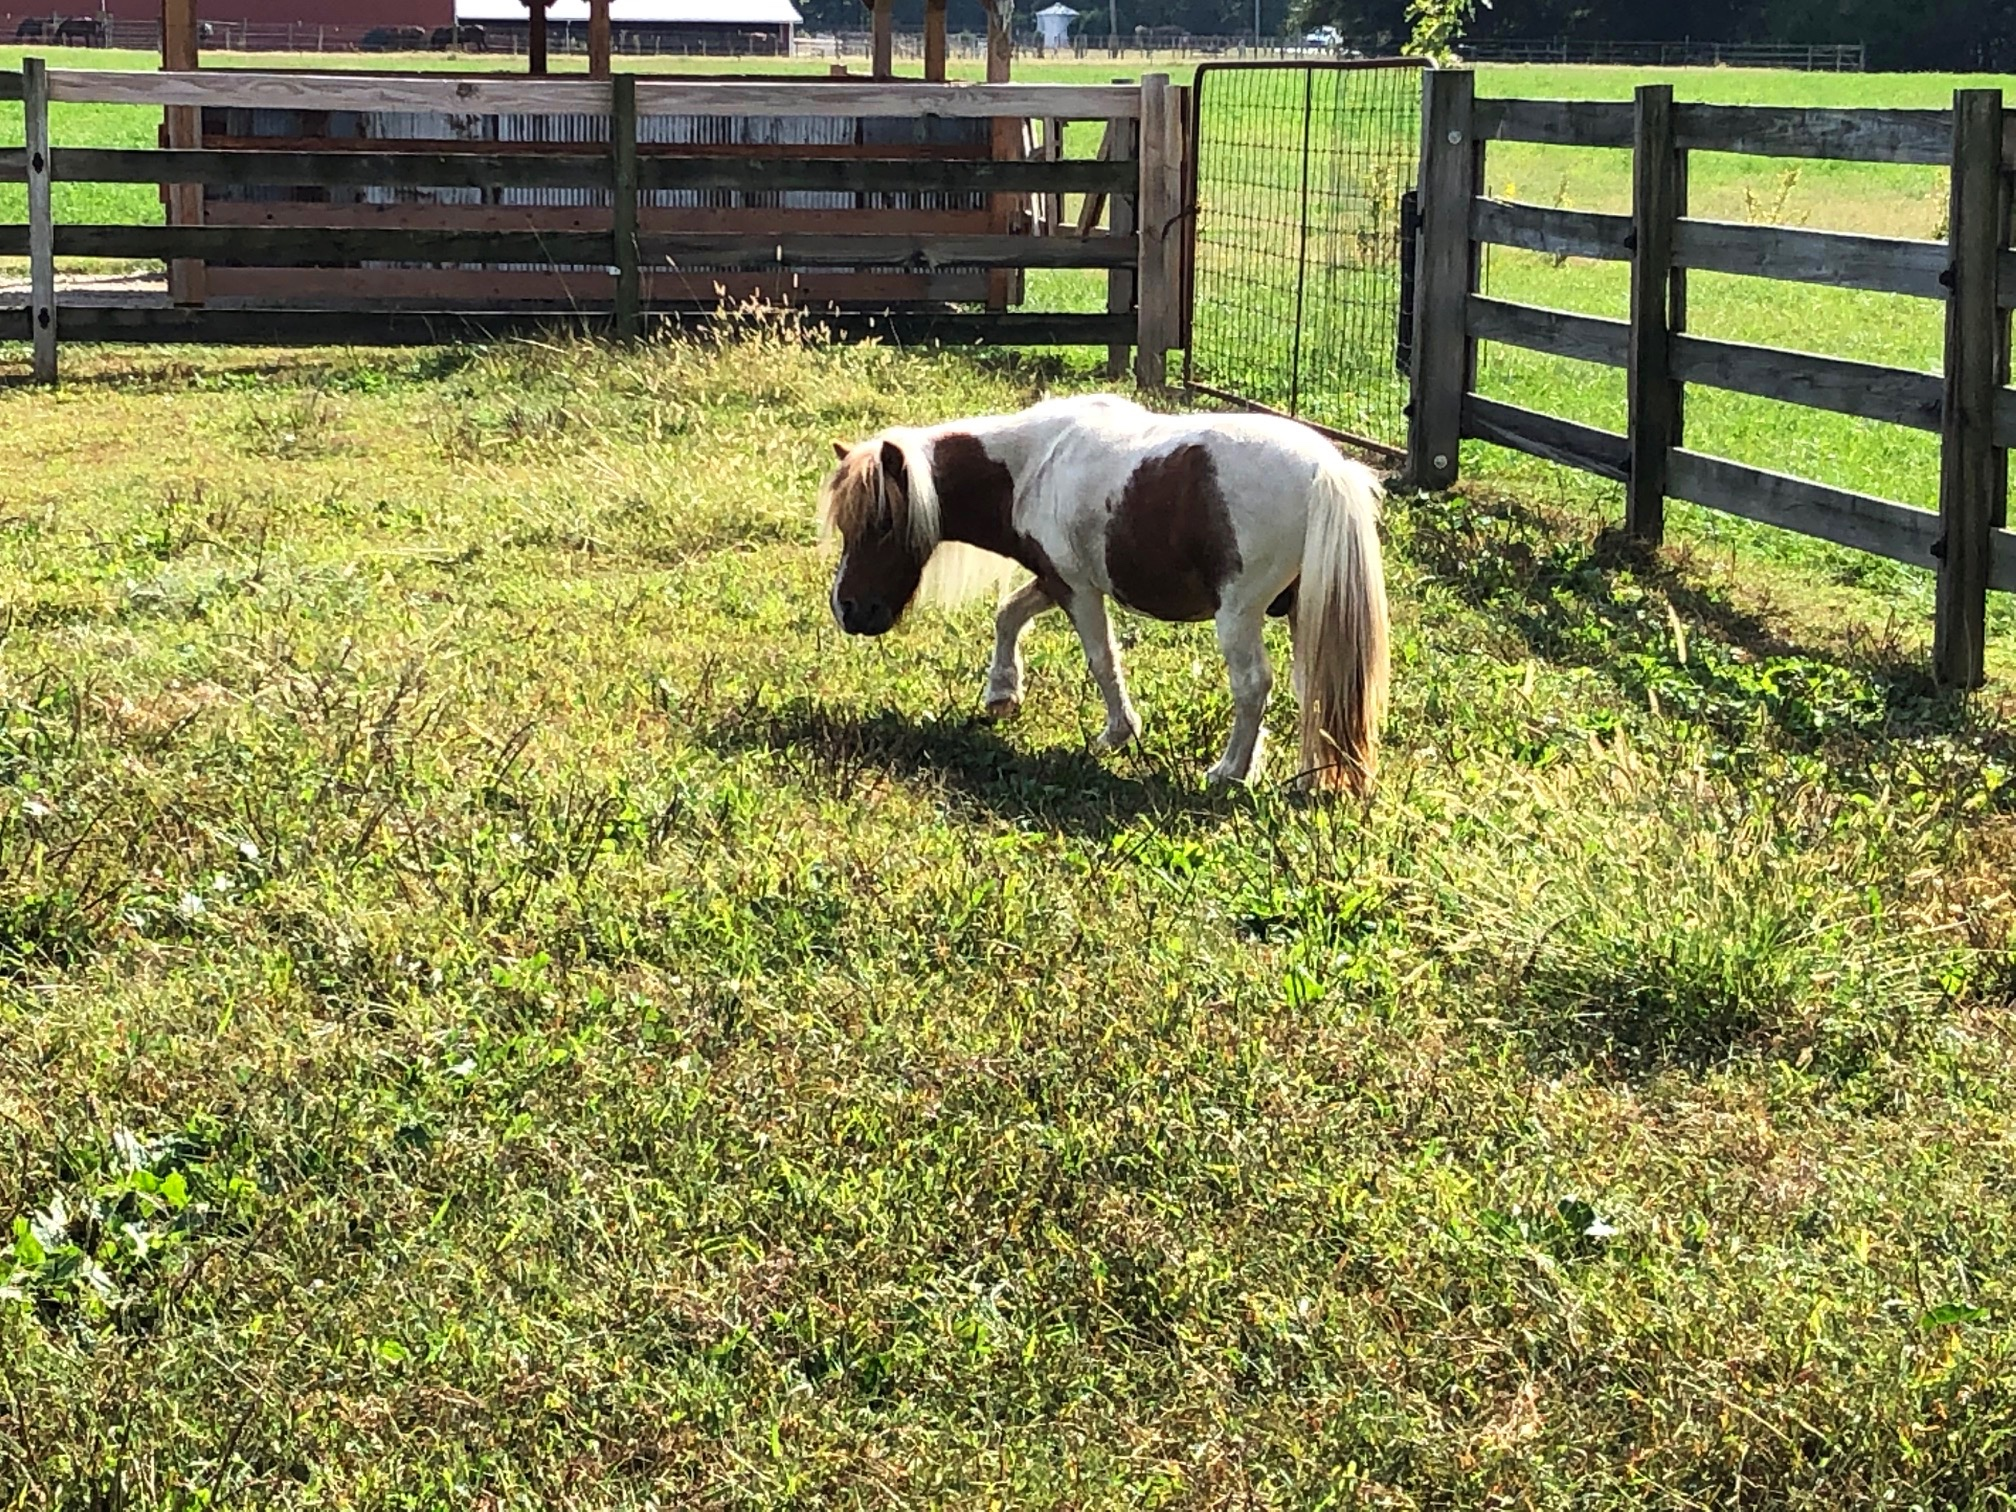 We've seen a lot of goats on our travels, but not as many miniature ponies.